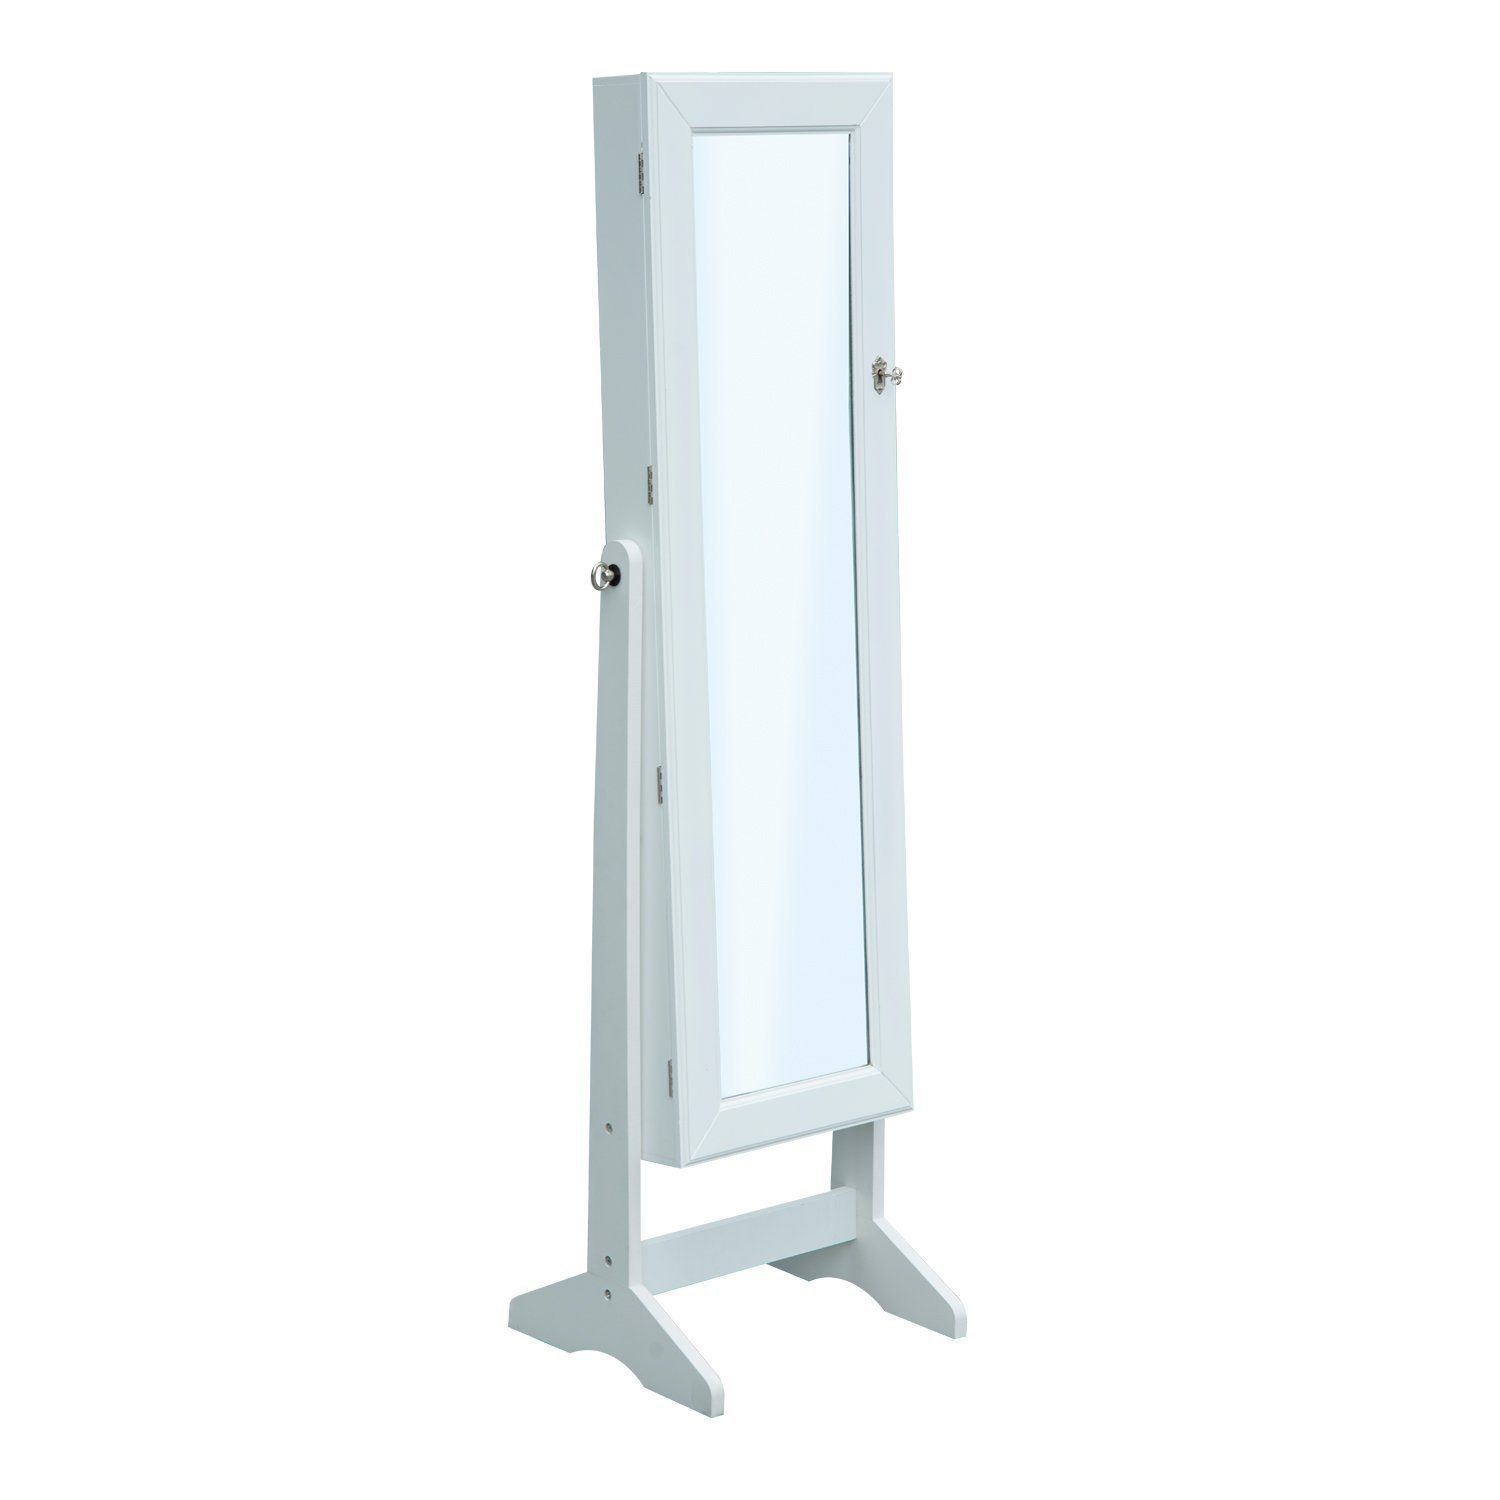 HOMCOM Mirrored Jewelry Cabinet Armoire Stand Organizer for Rings Earrings Bracelets Lockable (White) Aosom Canada